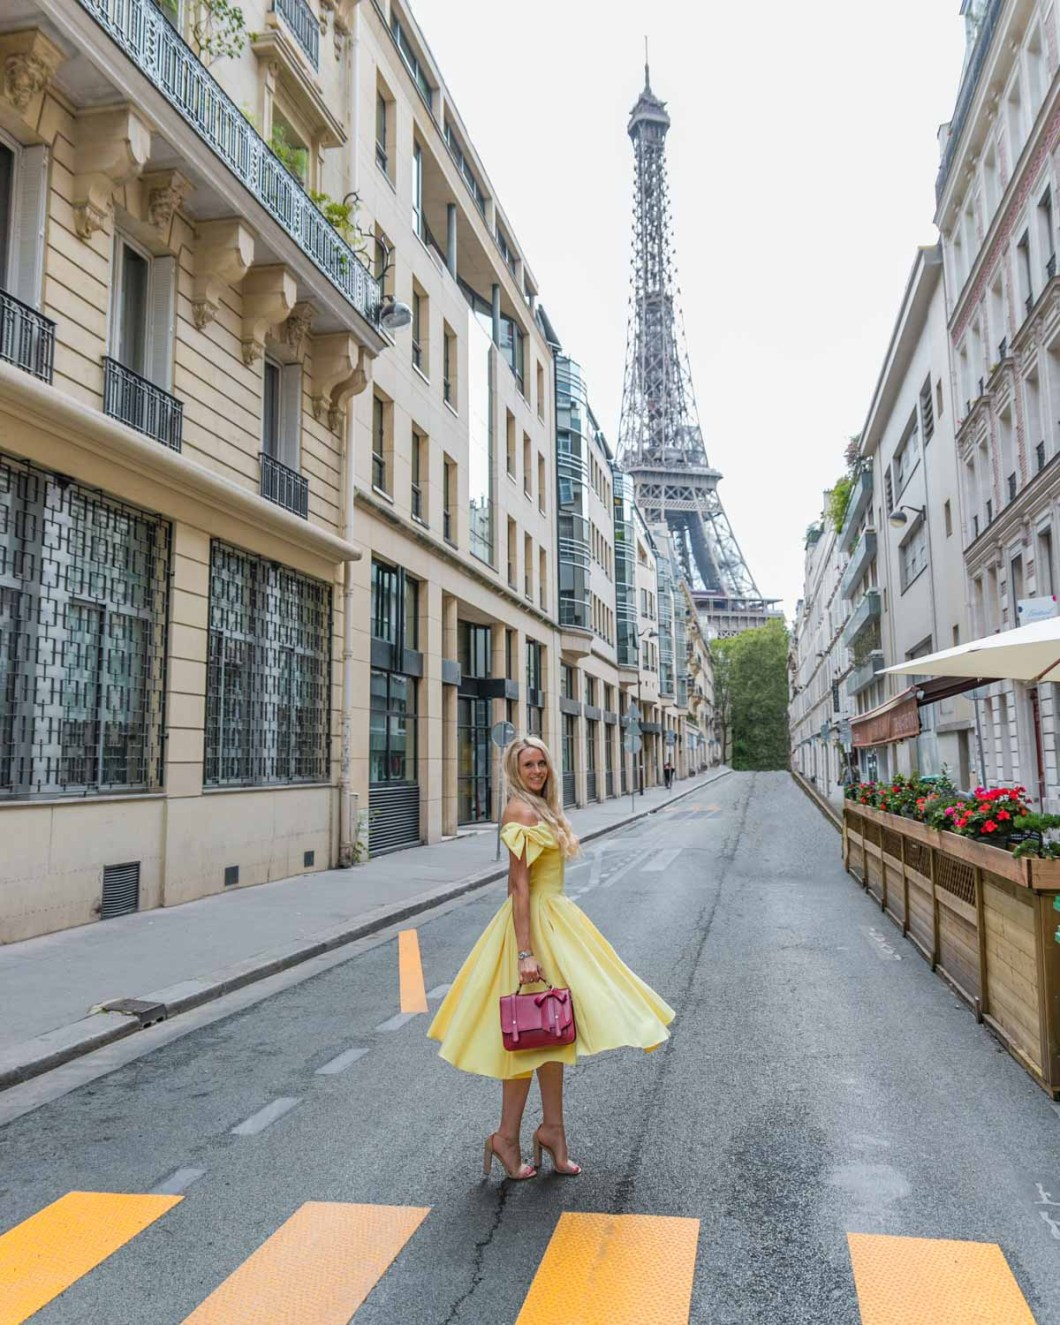 Rue de Monttessuy with the Eiffel Tower